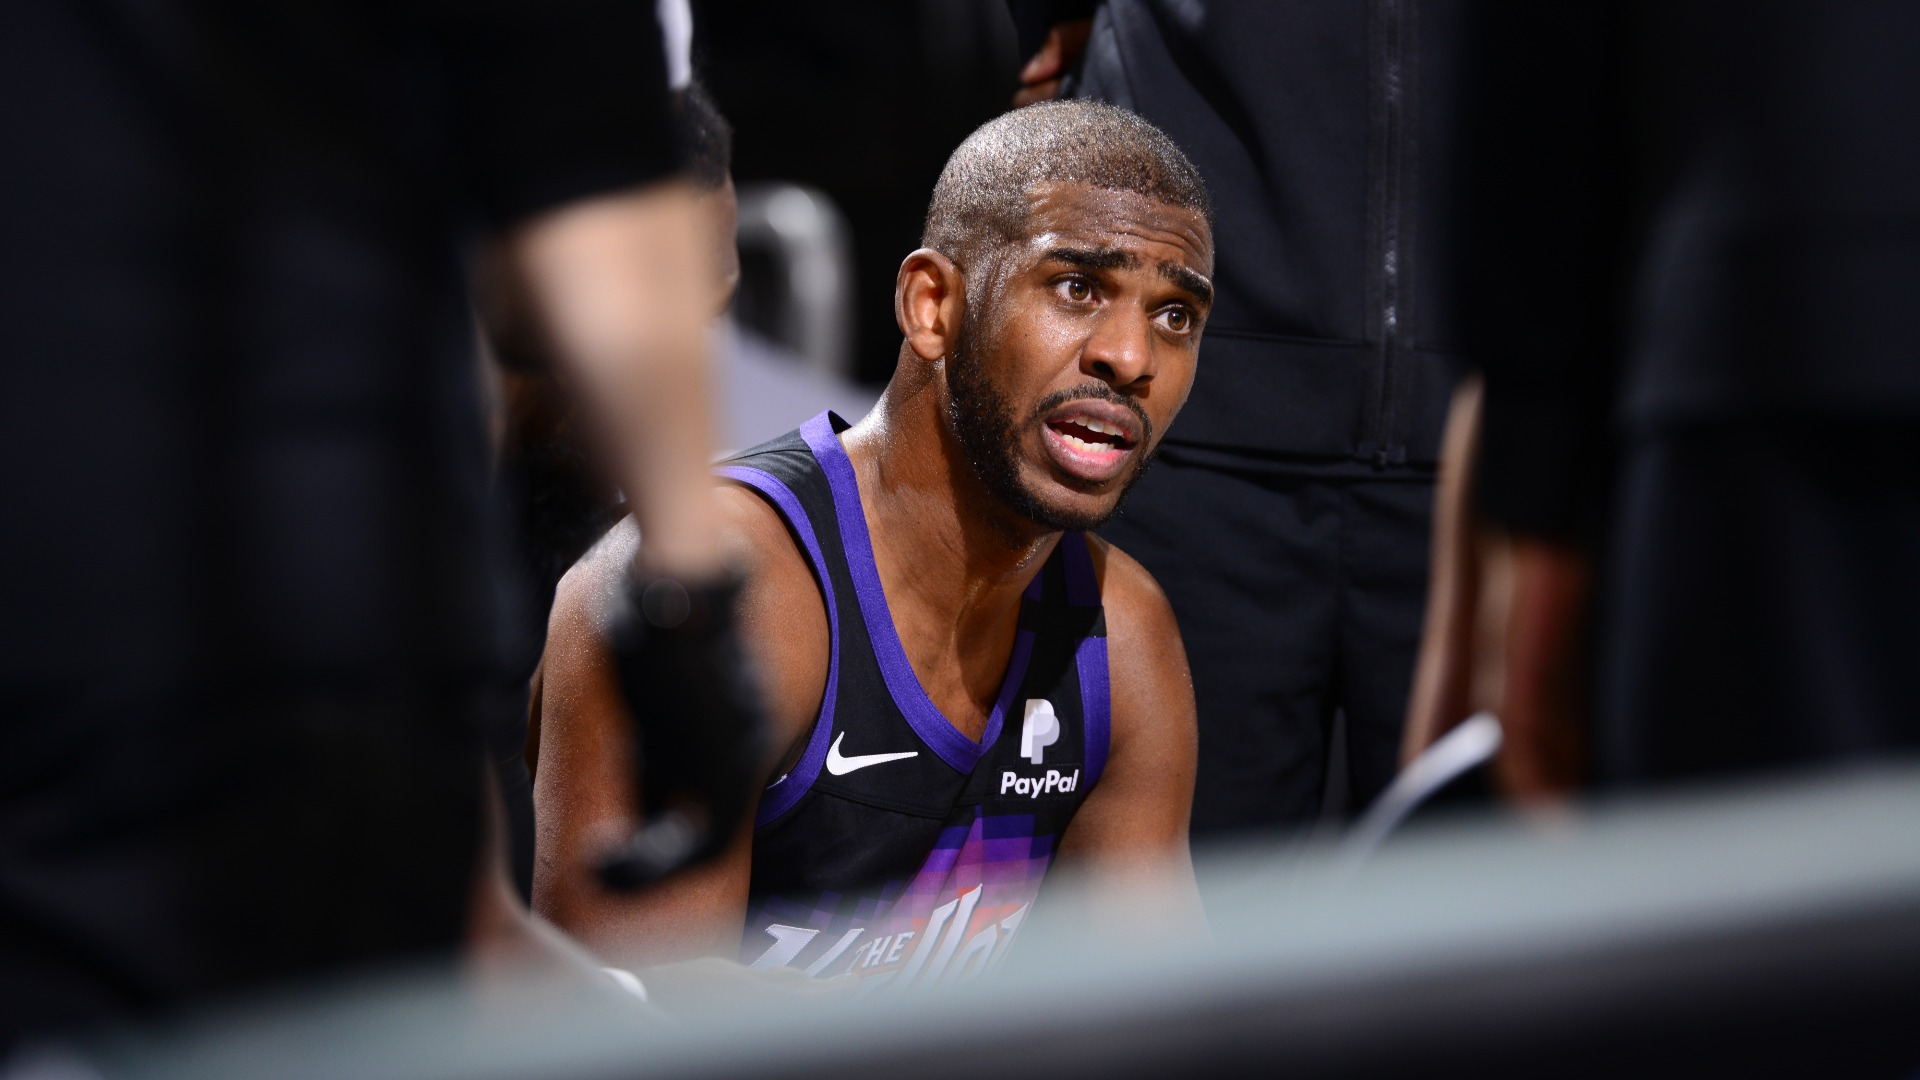 Monty Williams praised Chris Paul and Deandre Ayton after the Phoenix Suns defeated the Utah Jazz on Wednesday.